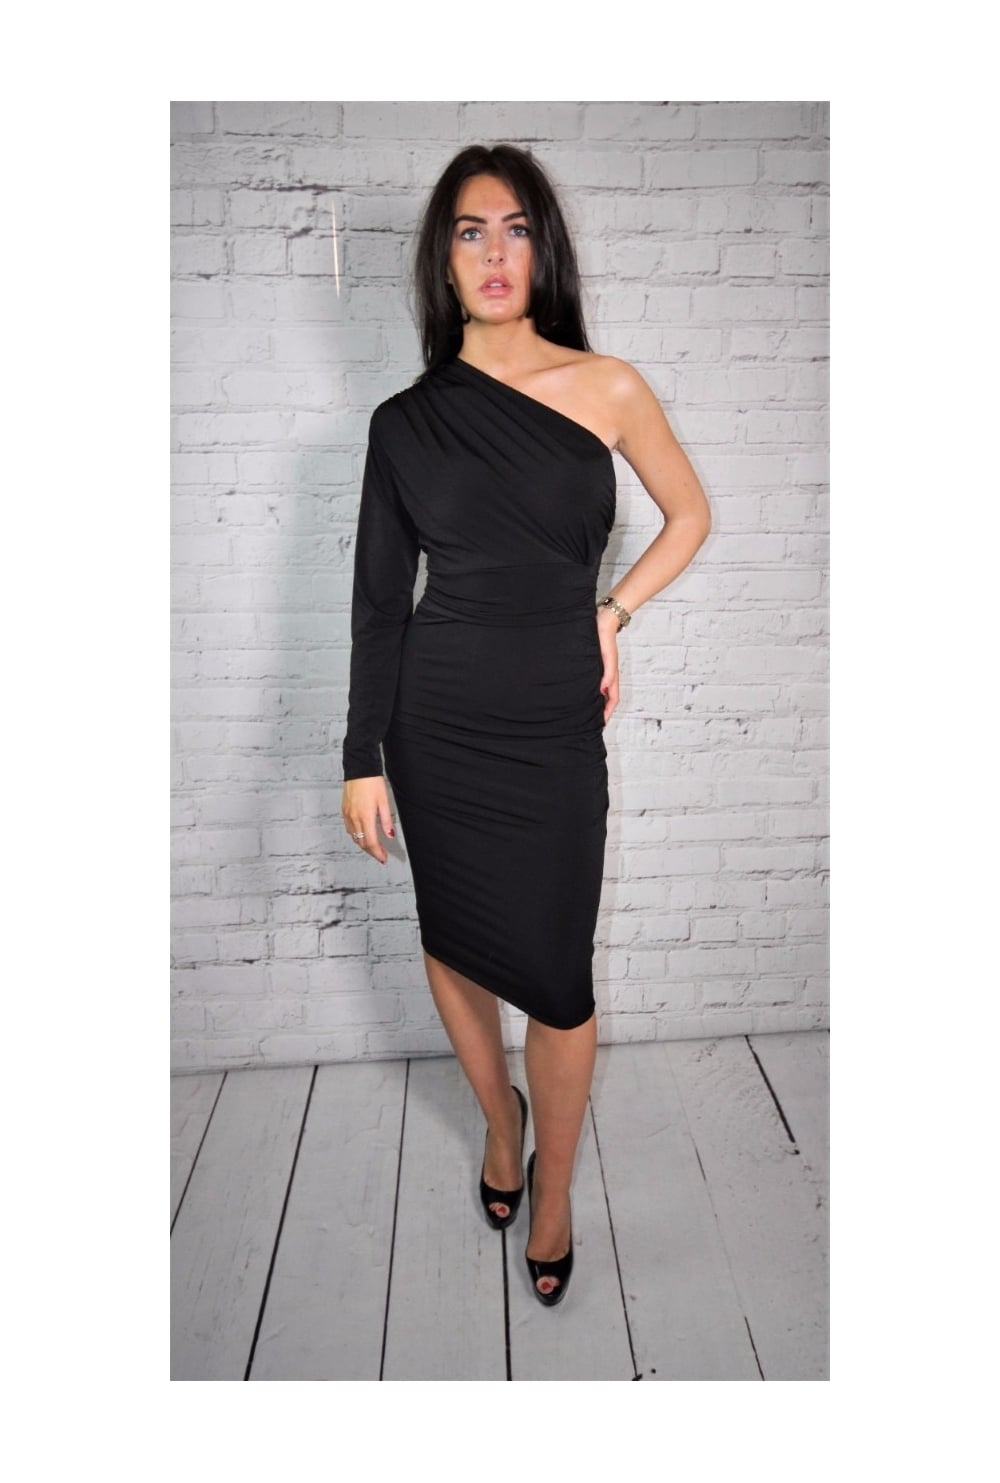 c0045d1b506e John Zack One Shoulder Dress Black - John Zack from Ruby Room UK